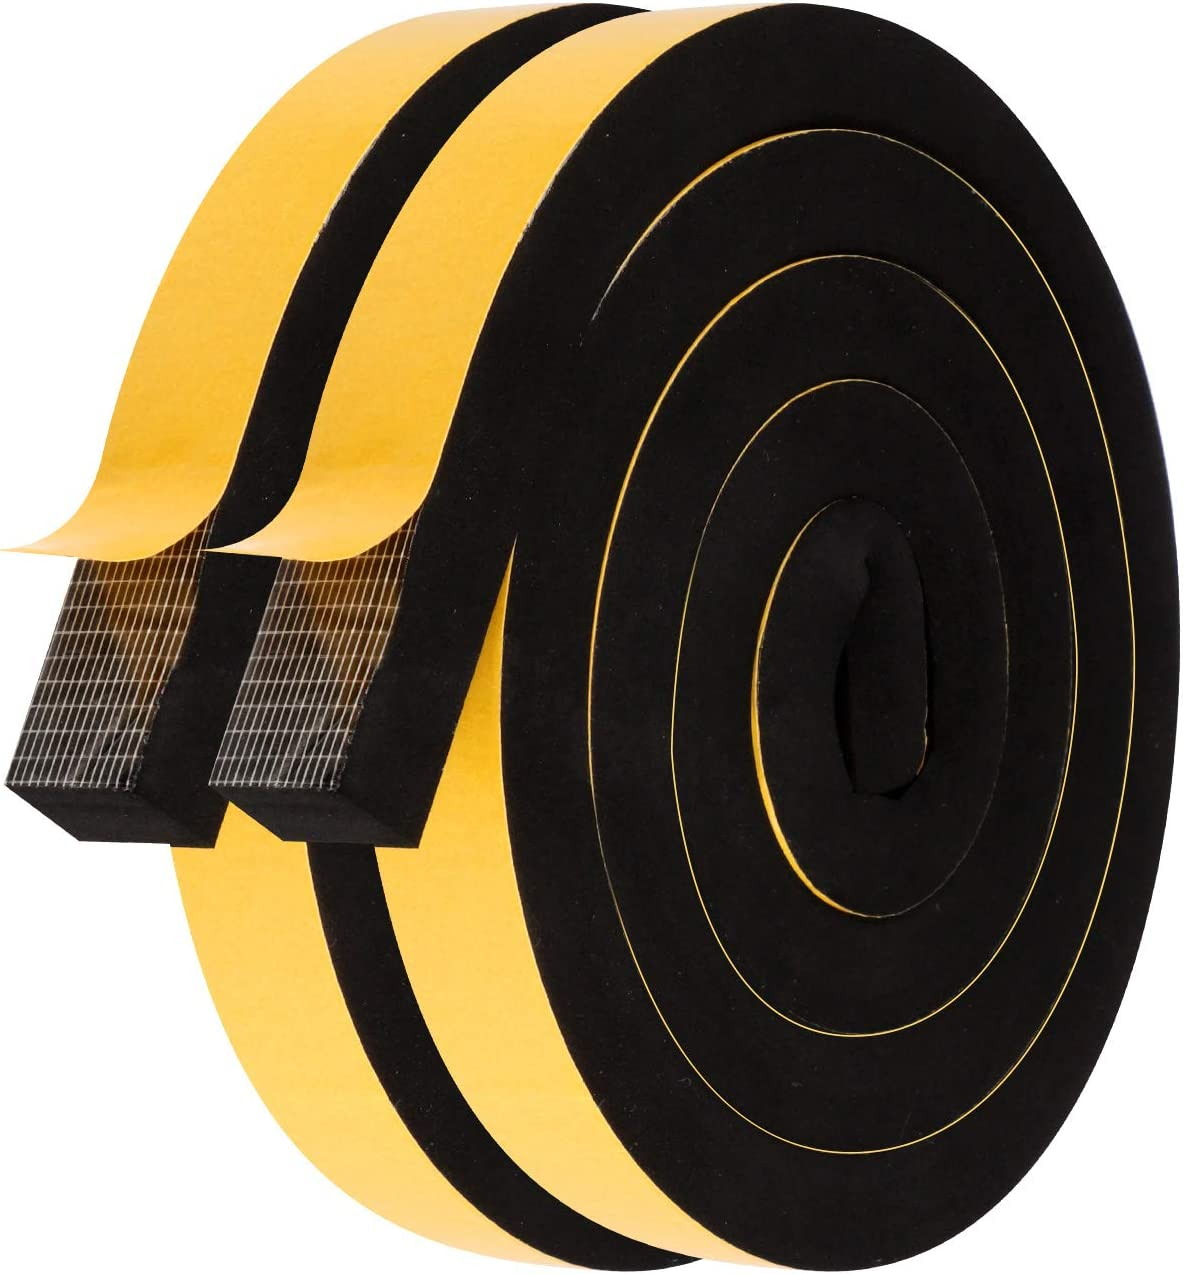 Foam Insulating Tape-2 Rolls, 1 Inch Wide X 3/4 Inch Thick Total 13 Feet Long, EPDM Foam Strips with Adhesive for Door, Automotive, Air Conditioner Seal (6.5ft x 2 Rolls)